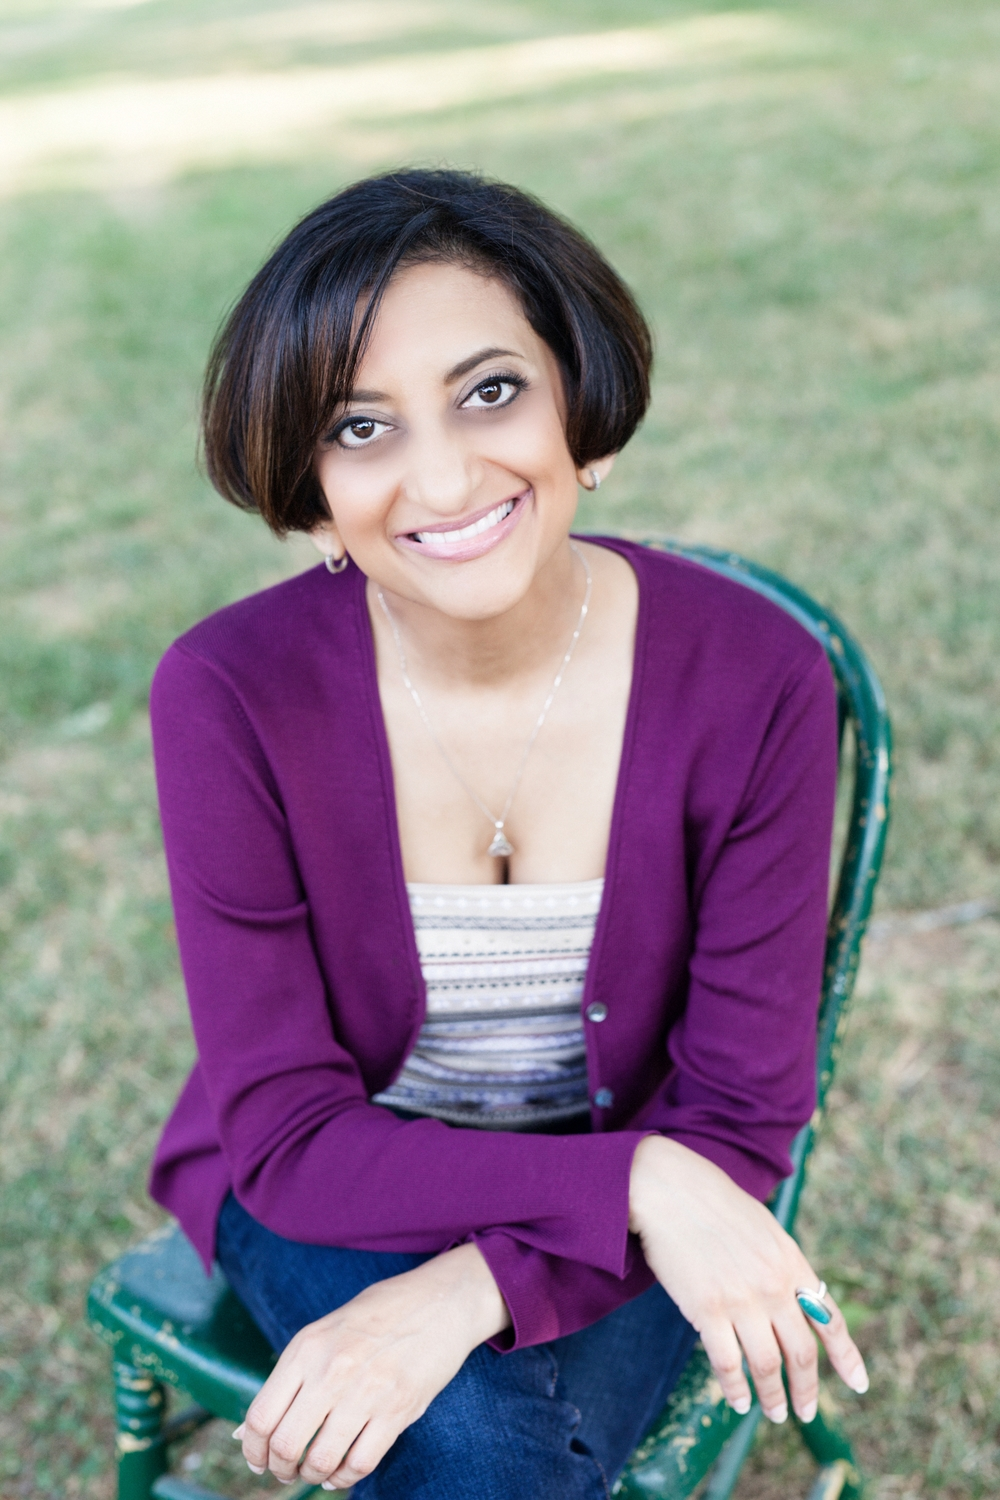 Headshot photographer charlotte nc-lindsay wynne photography-author headshot-Shaila Patel 08.jpg